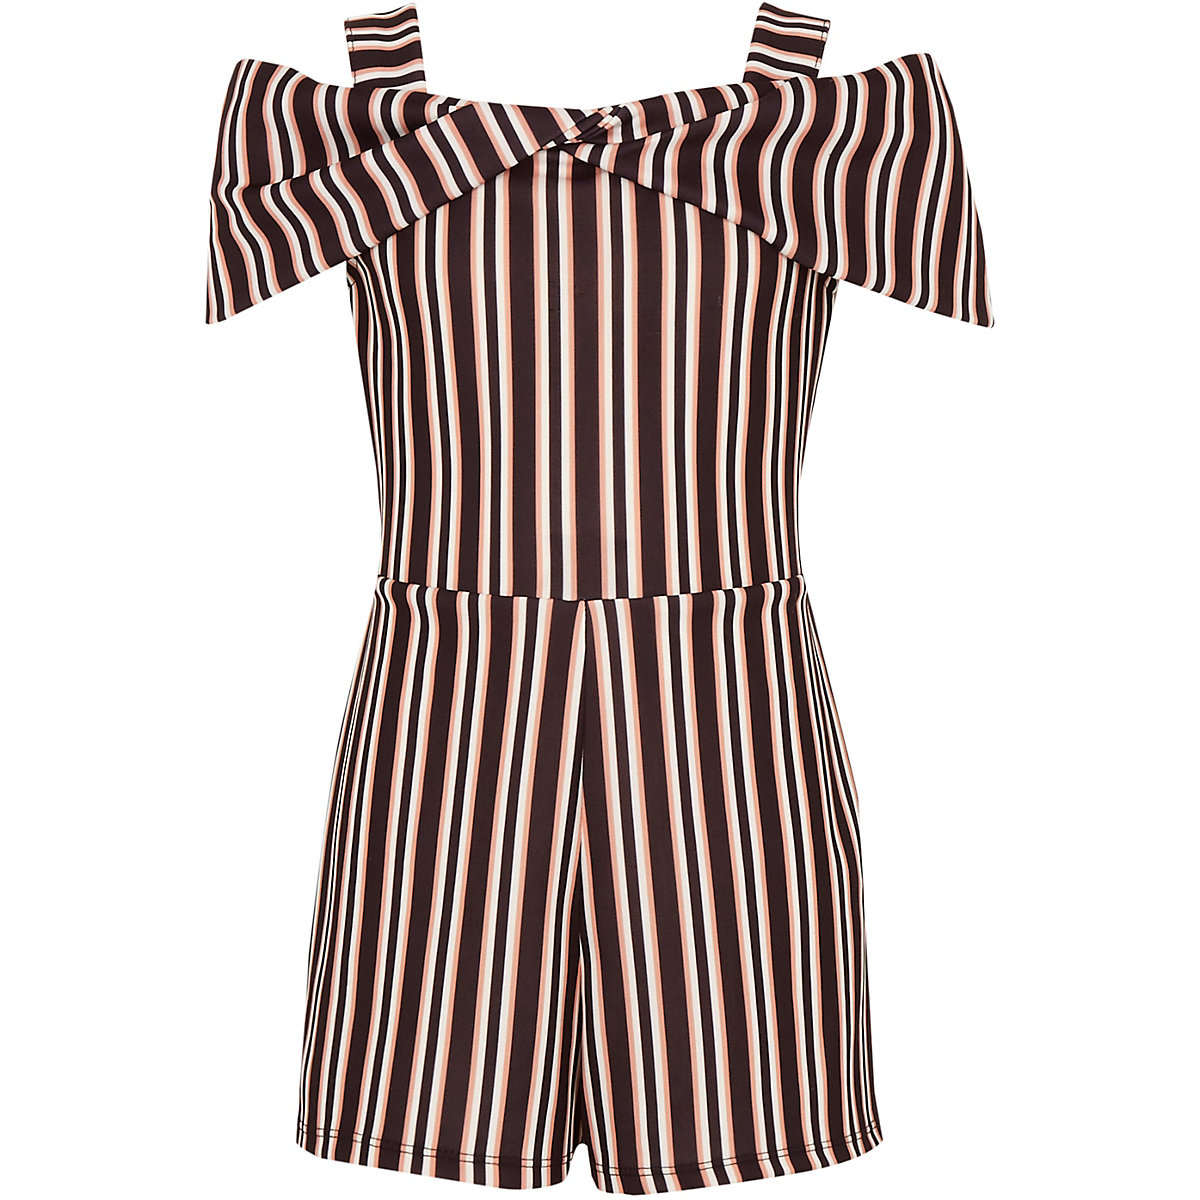 953274bb7582 Girls black stripe bow cold shoulder romper - Rompers - Rompers ...